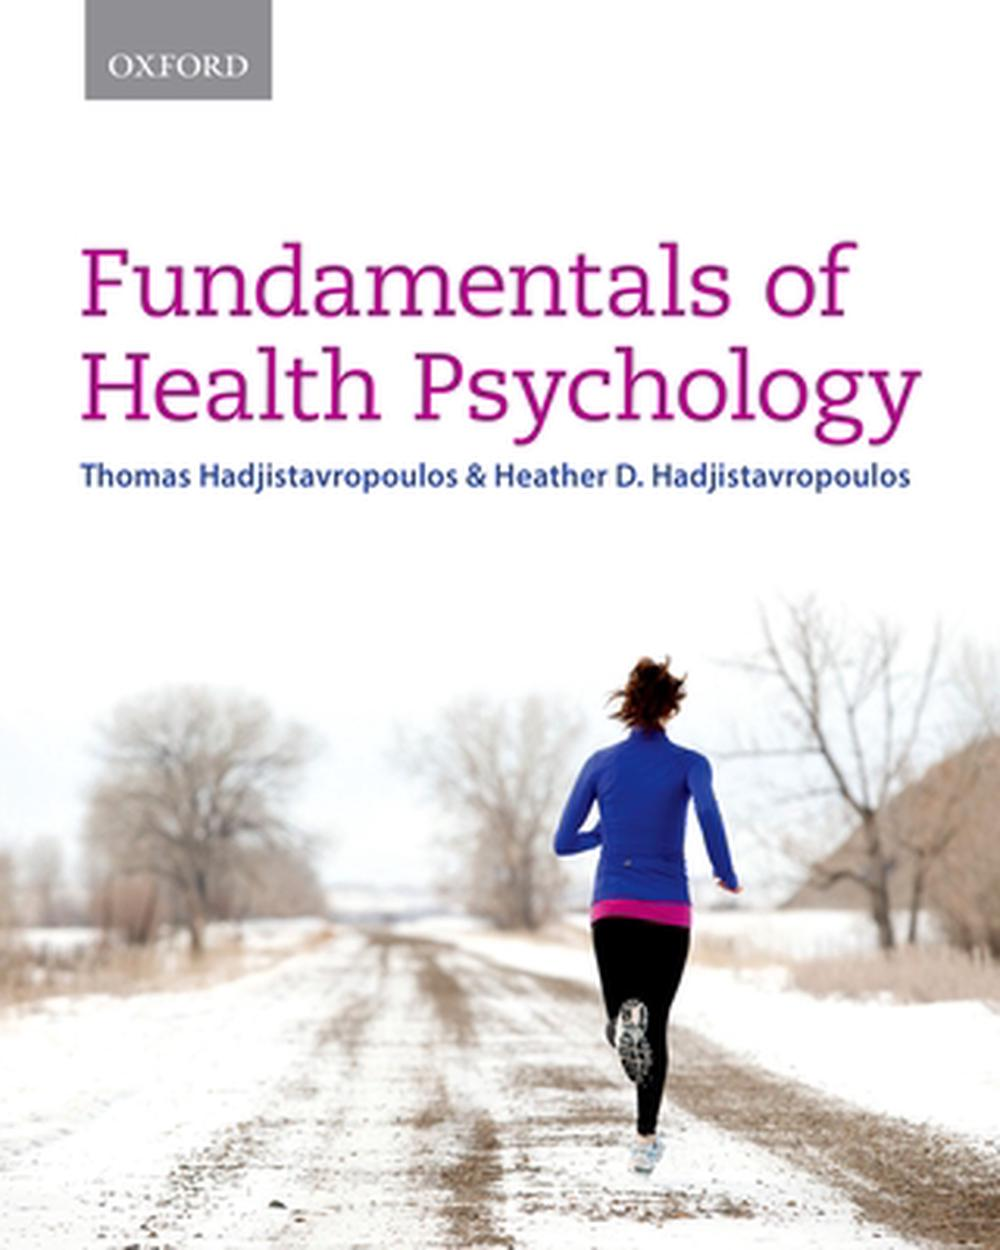 Fundamentals of Health Psychology by Thomas Hadjistavropoulos Hardcover  Book Fre 9780199002757 | eBay